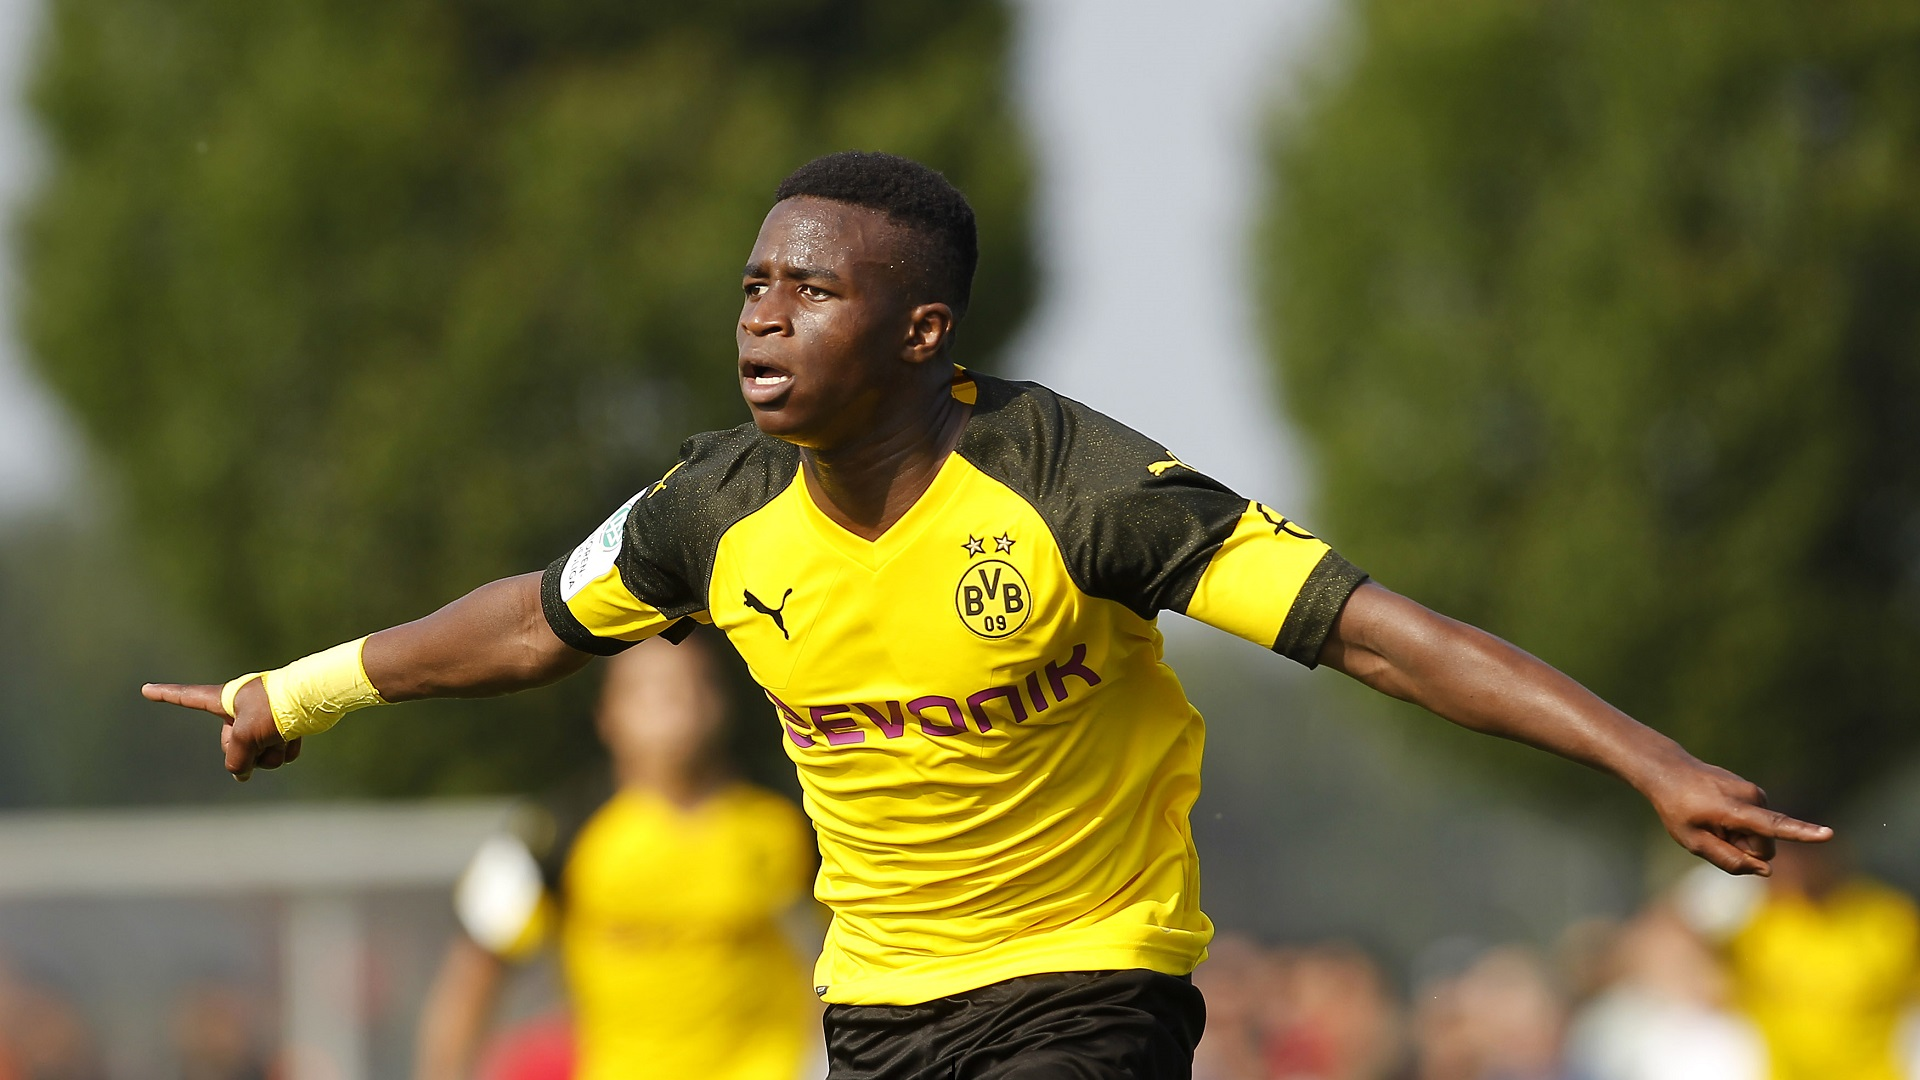 Dortmund teenager Moukoko eyes partnership with Haaland